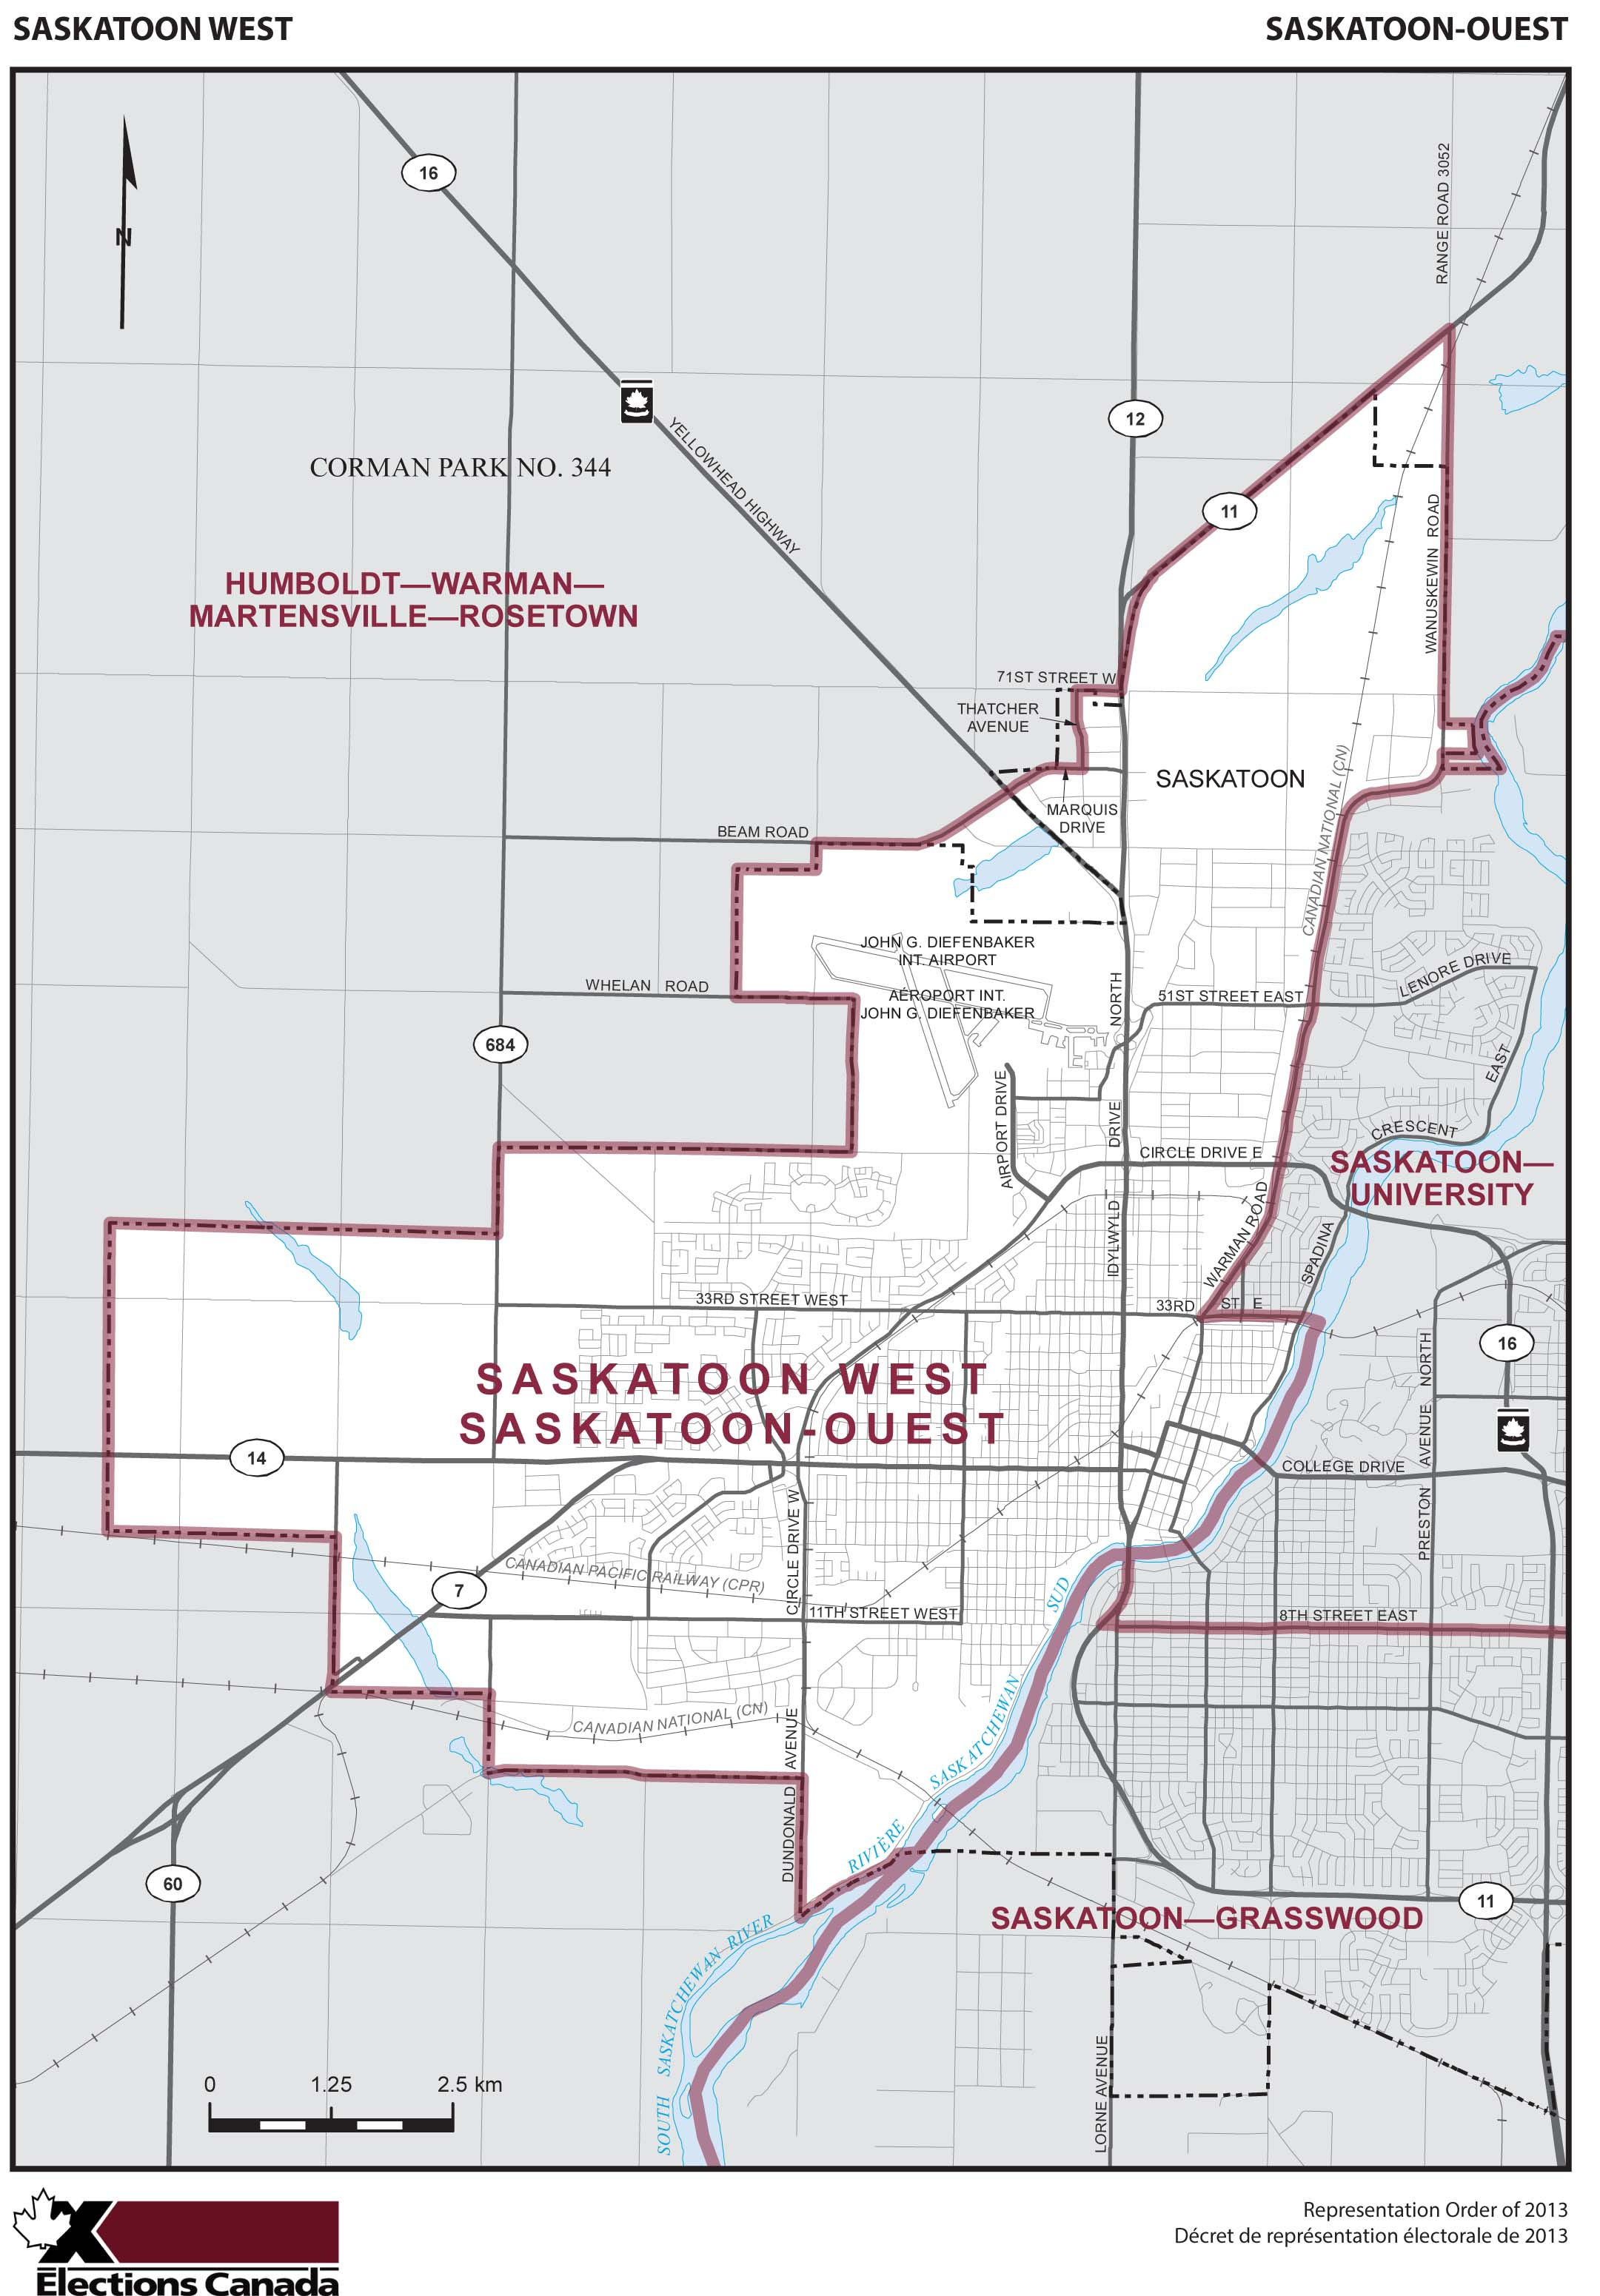 Map: Saskatoon West, Federal electoral district, 2013 Representation Order (in white), Saskatchewan